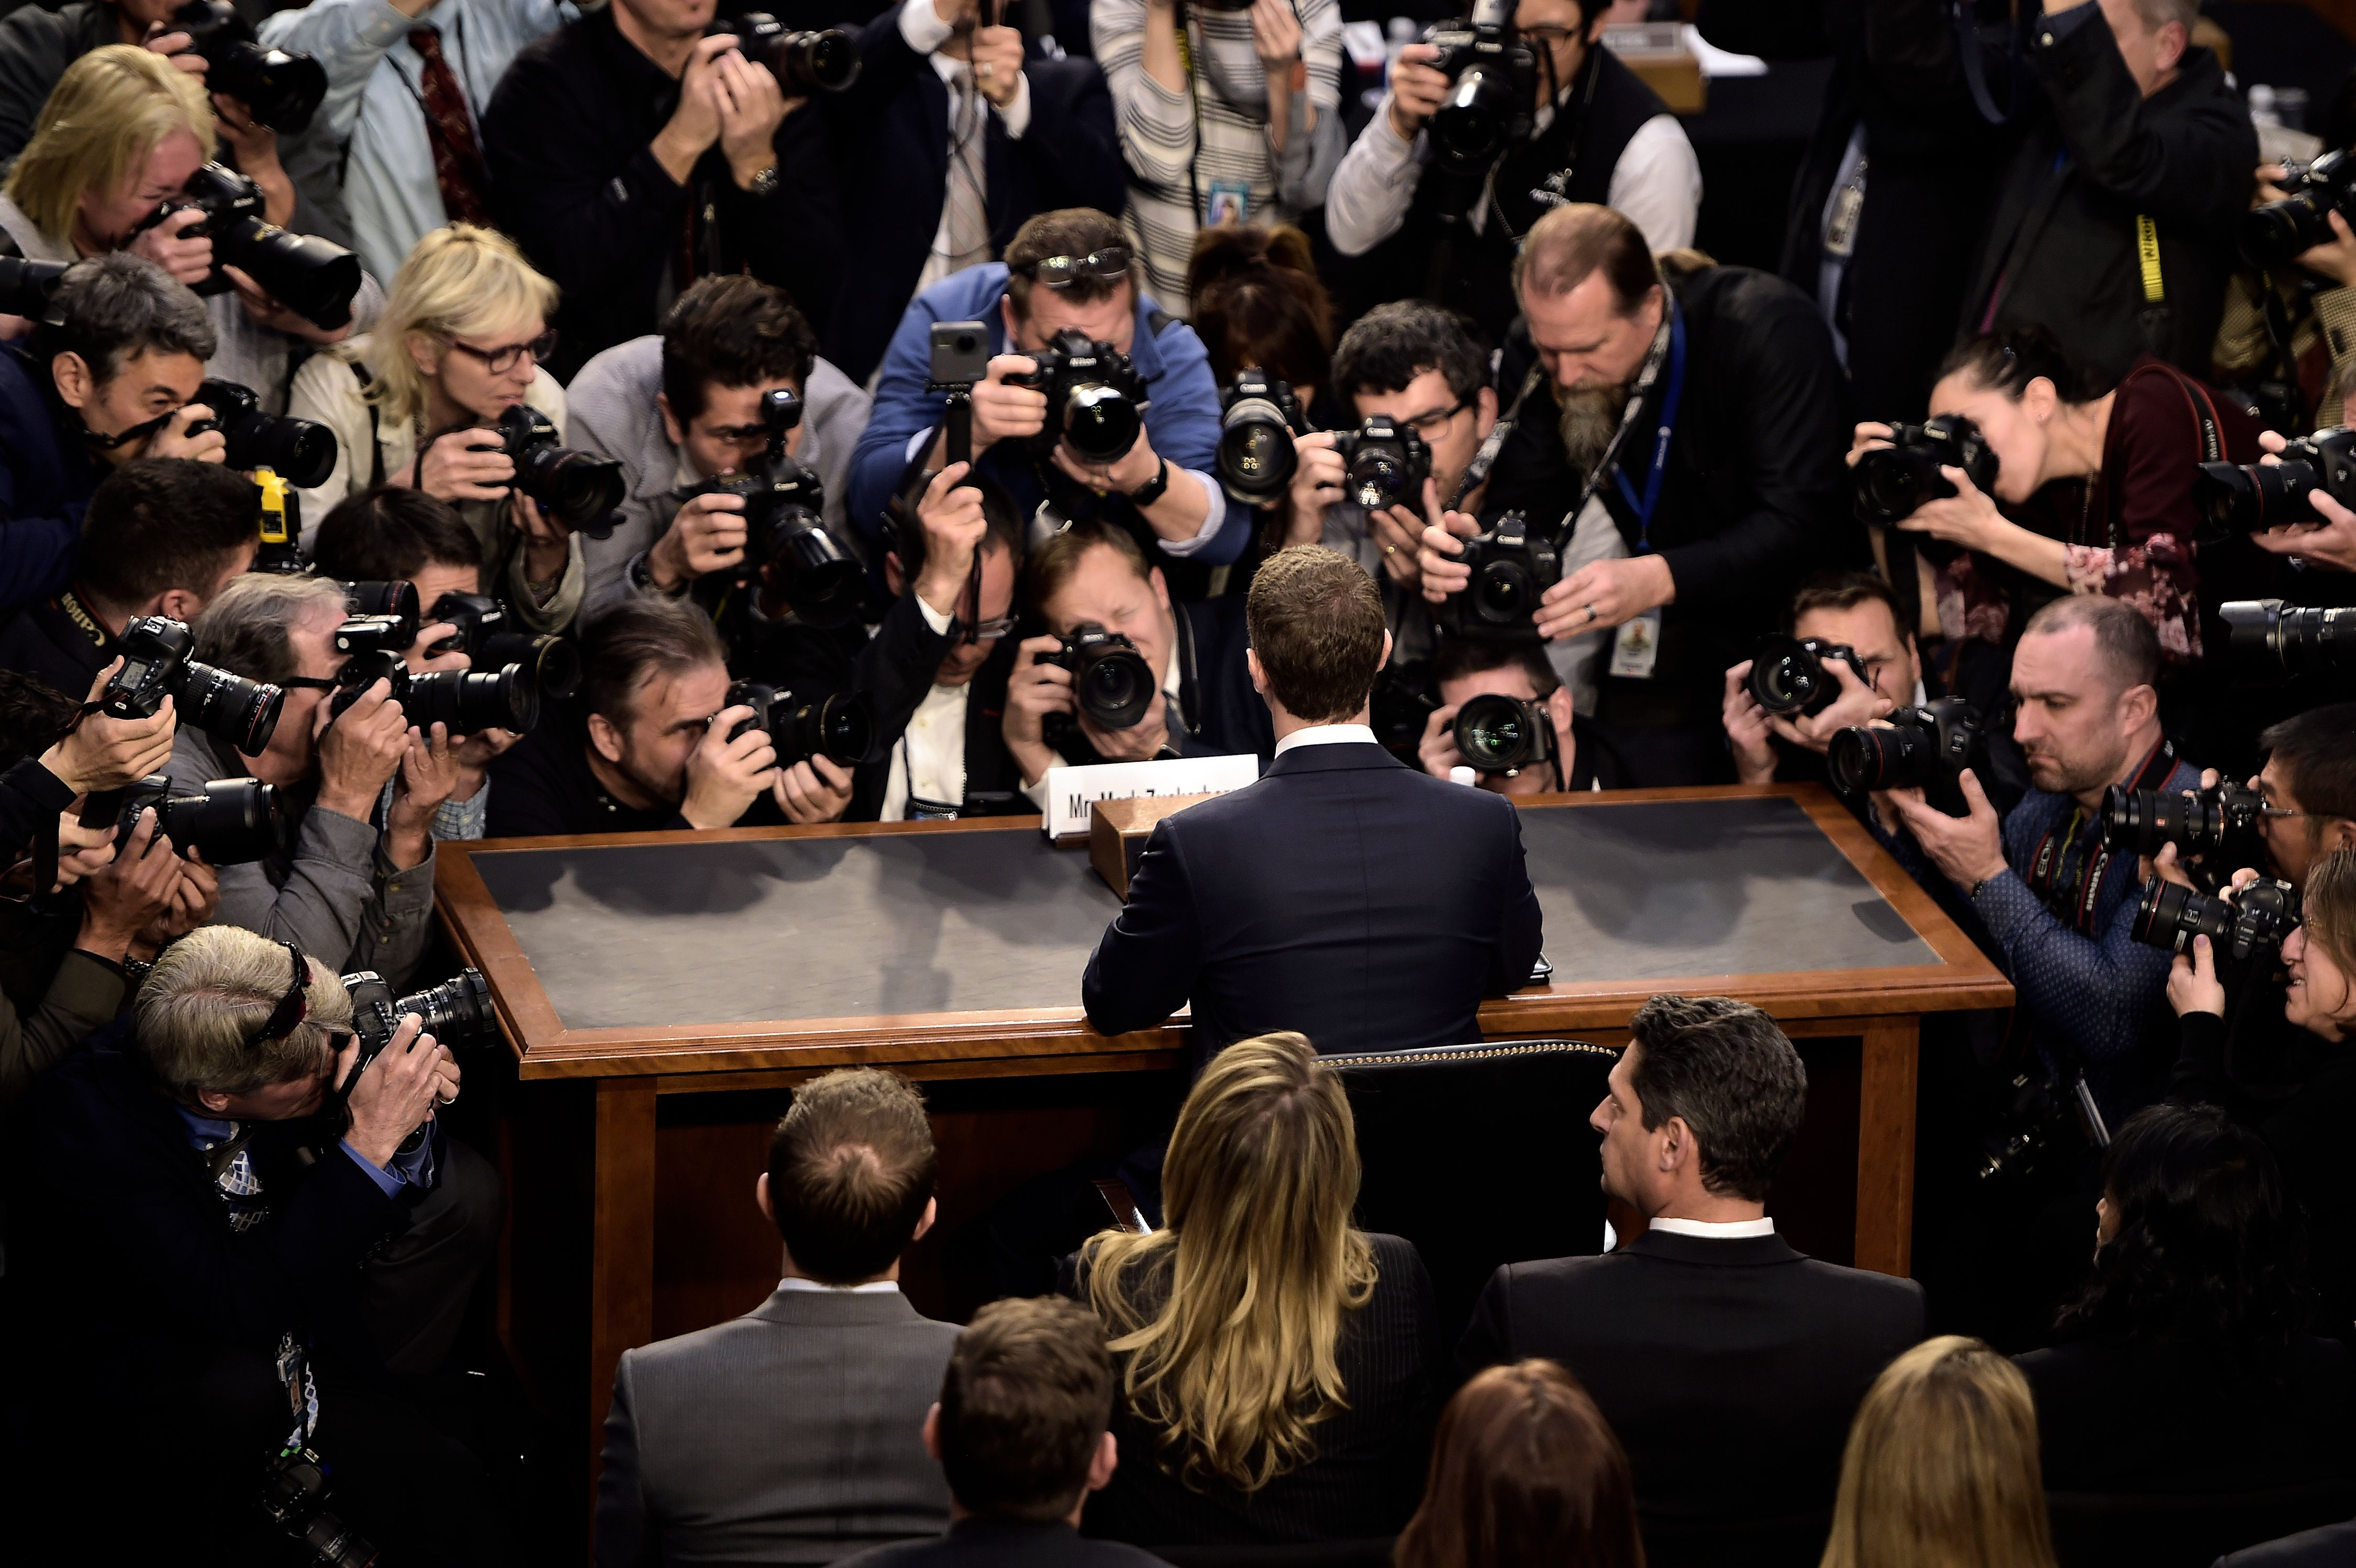 Facebook CEO Mark Zuckerberg arrives to testify before a joint hearing of the US Senate Commerce, Science and Transportation Committee and Senate Judiciary Committee on Capitol Hill, April 10, 2018 in Washington, DC. / AFP PHOTO / Brendan Smialowski via Getty Images)